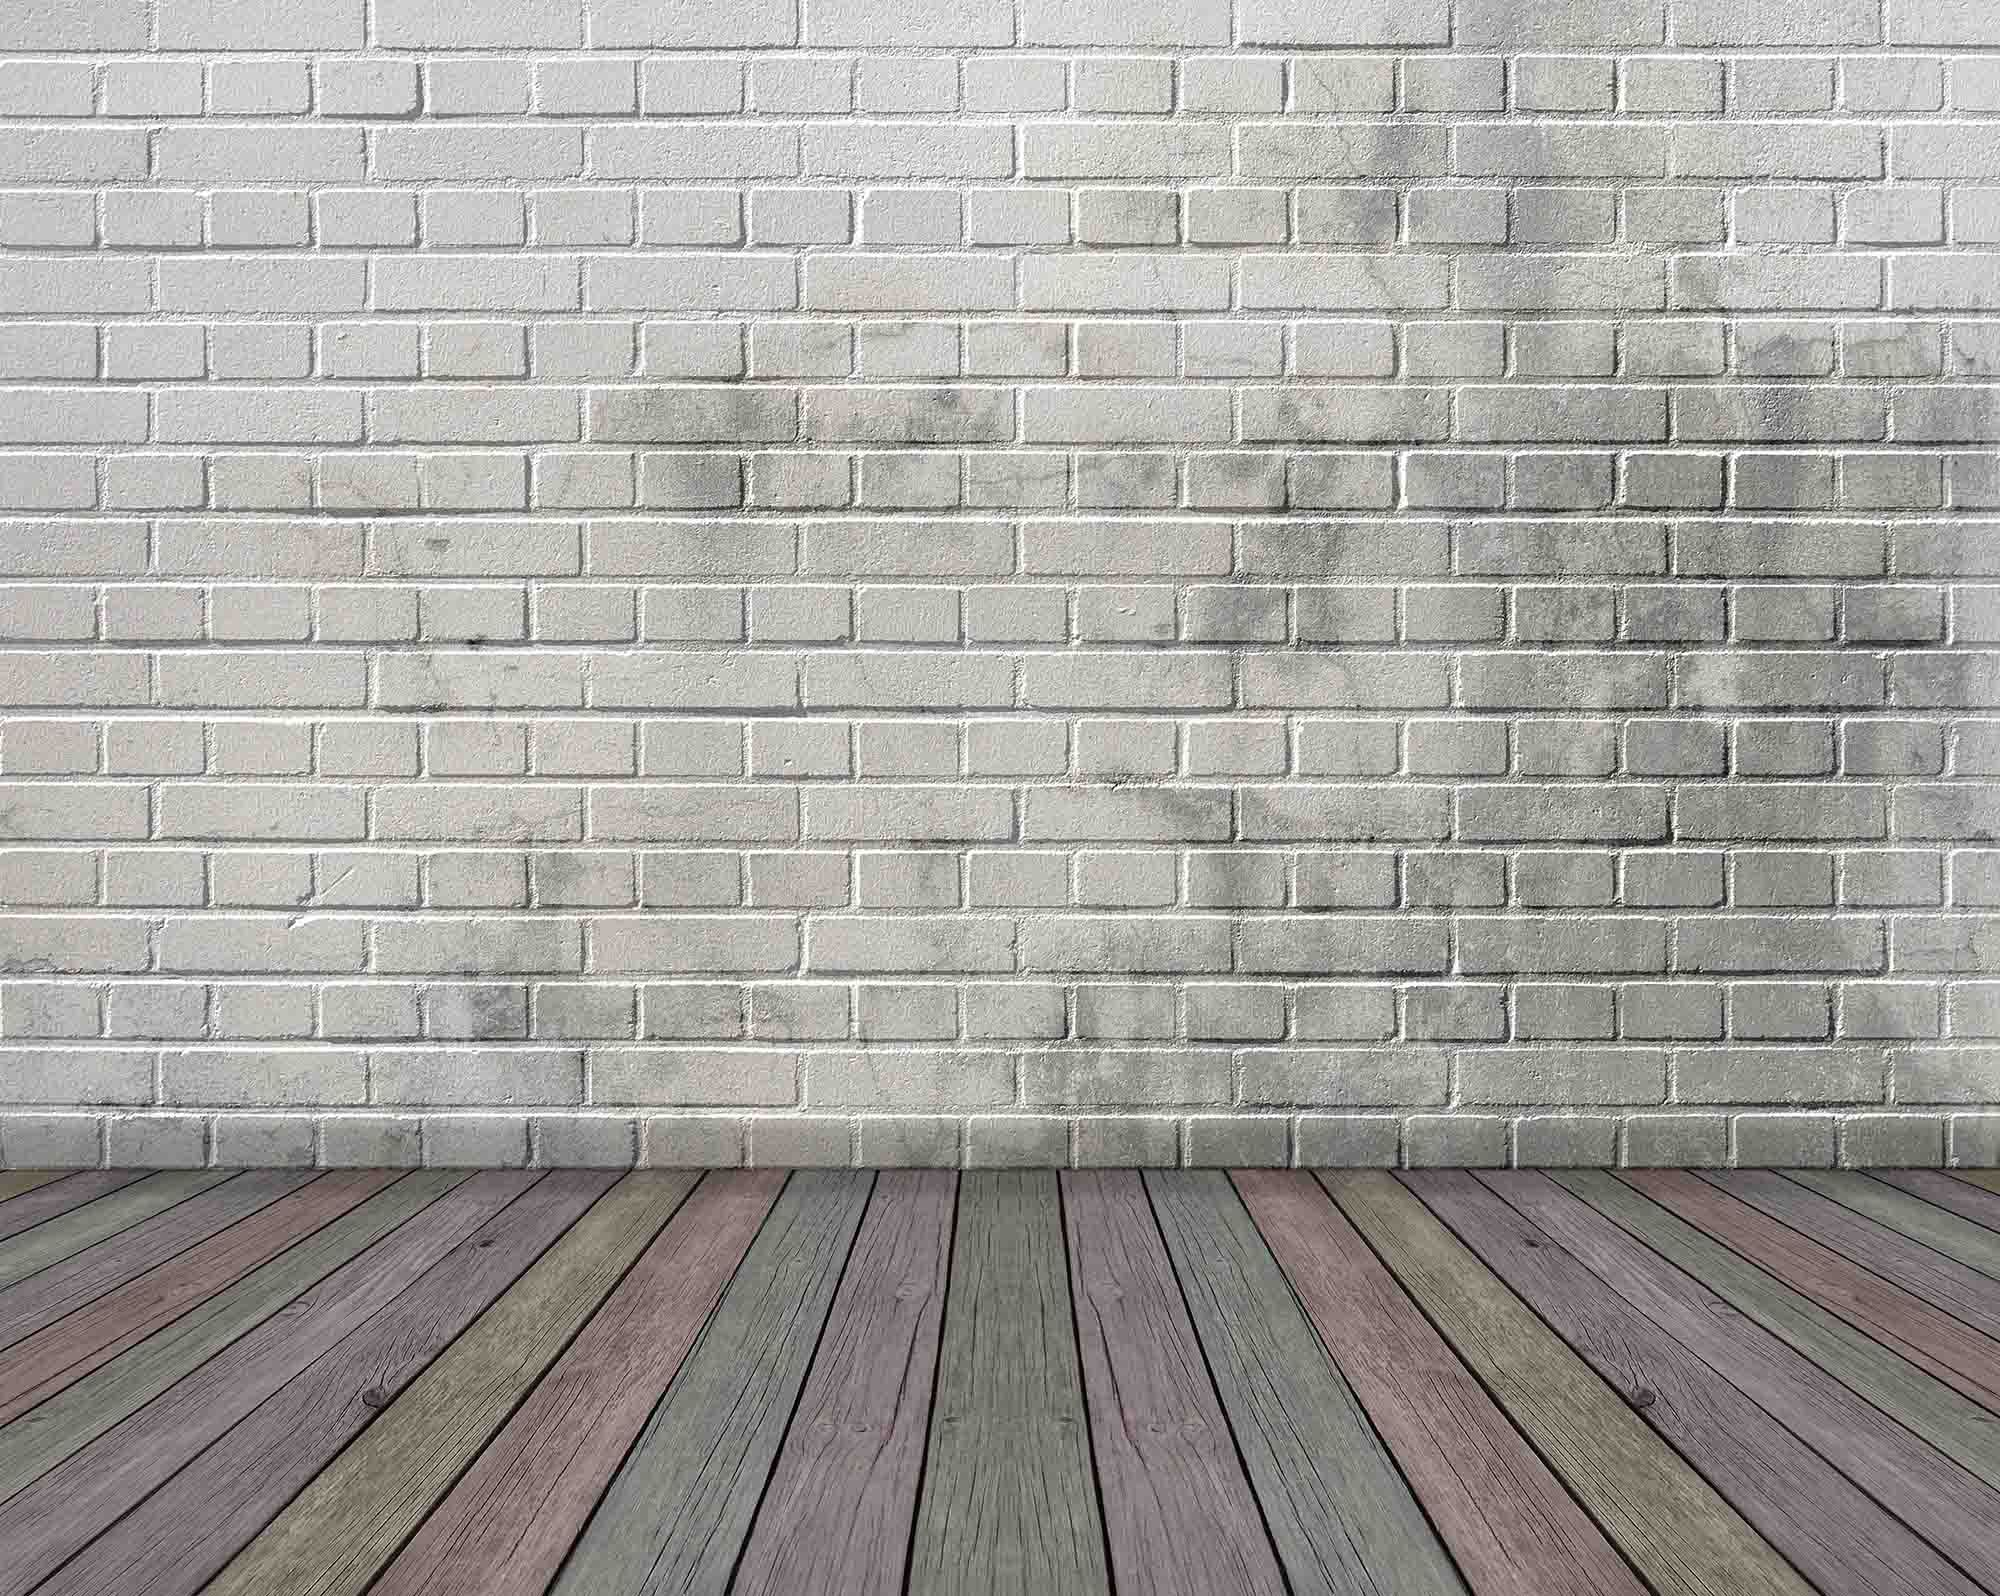 White Brick Wall Texture With Colorful Wood Floor Backdrop For Photo Shopbackdrop